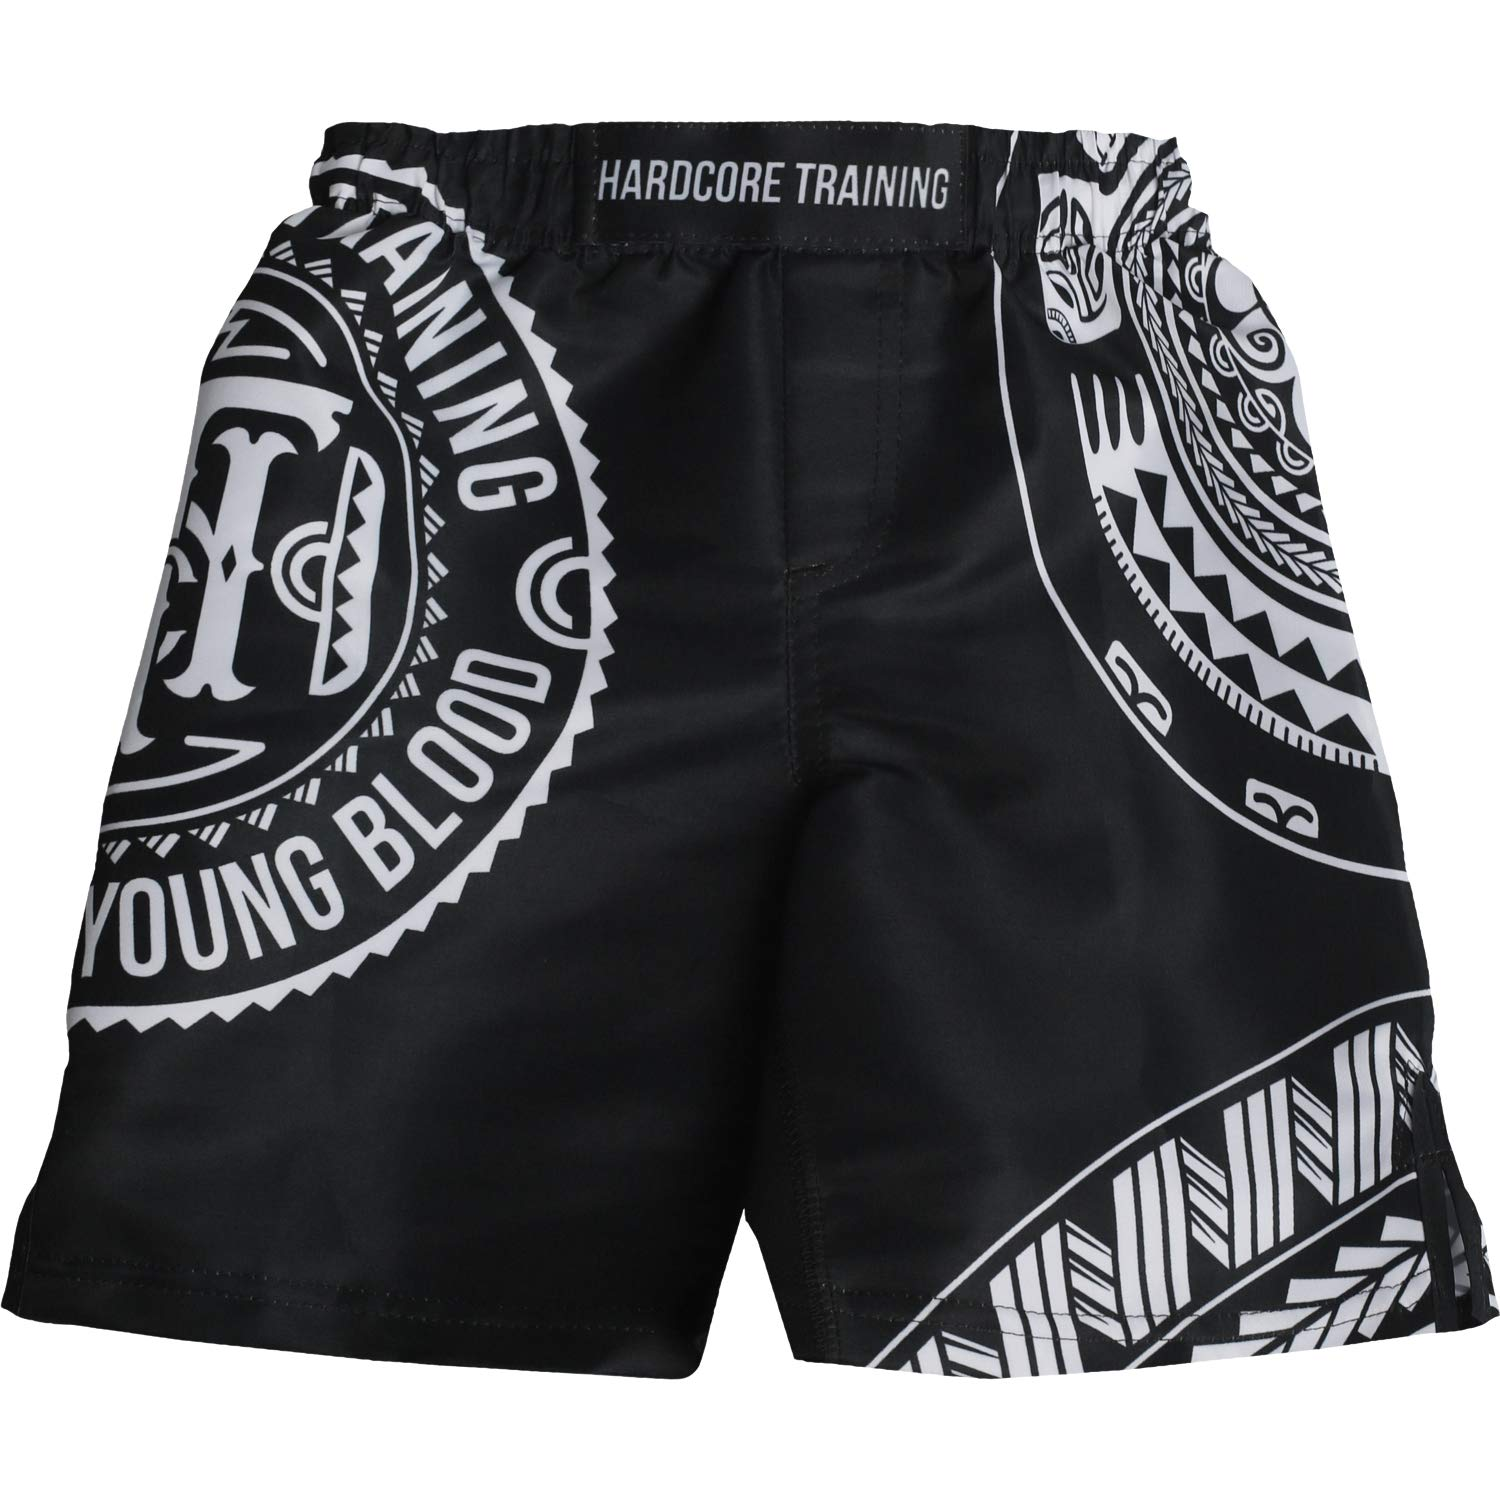 Hardcore Training Kids Boxing Shorts for Boy Ta Moko Black - Fighting Fitness BJJ Wrestling Active by Hardcore Training